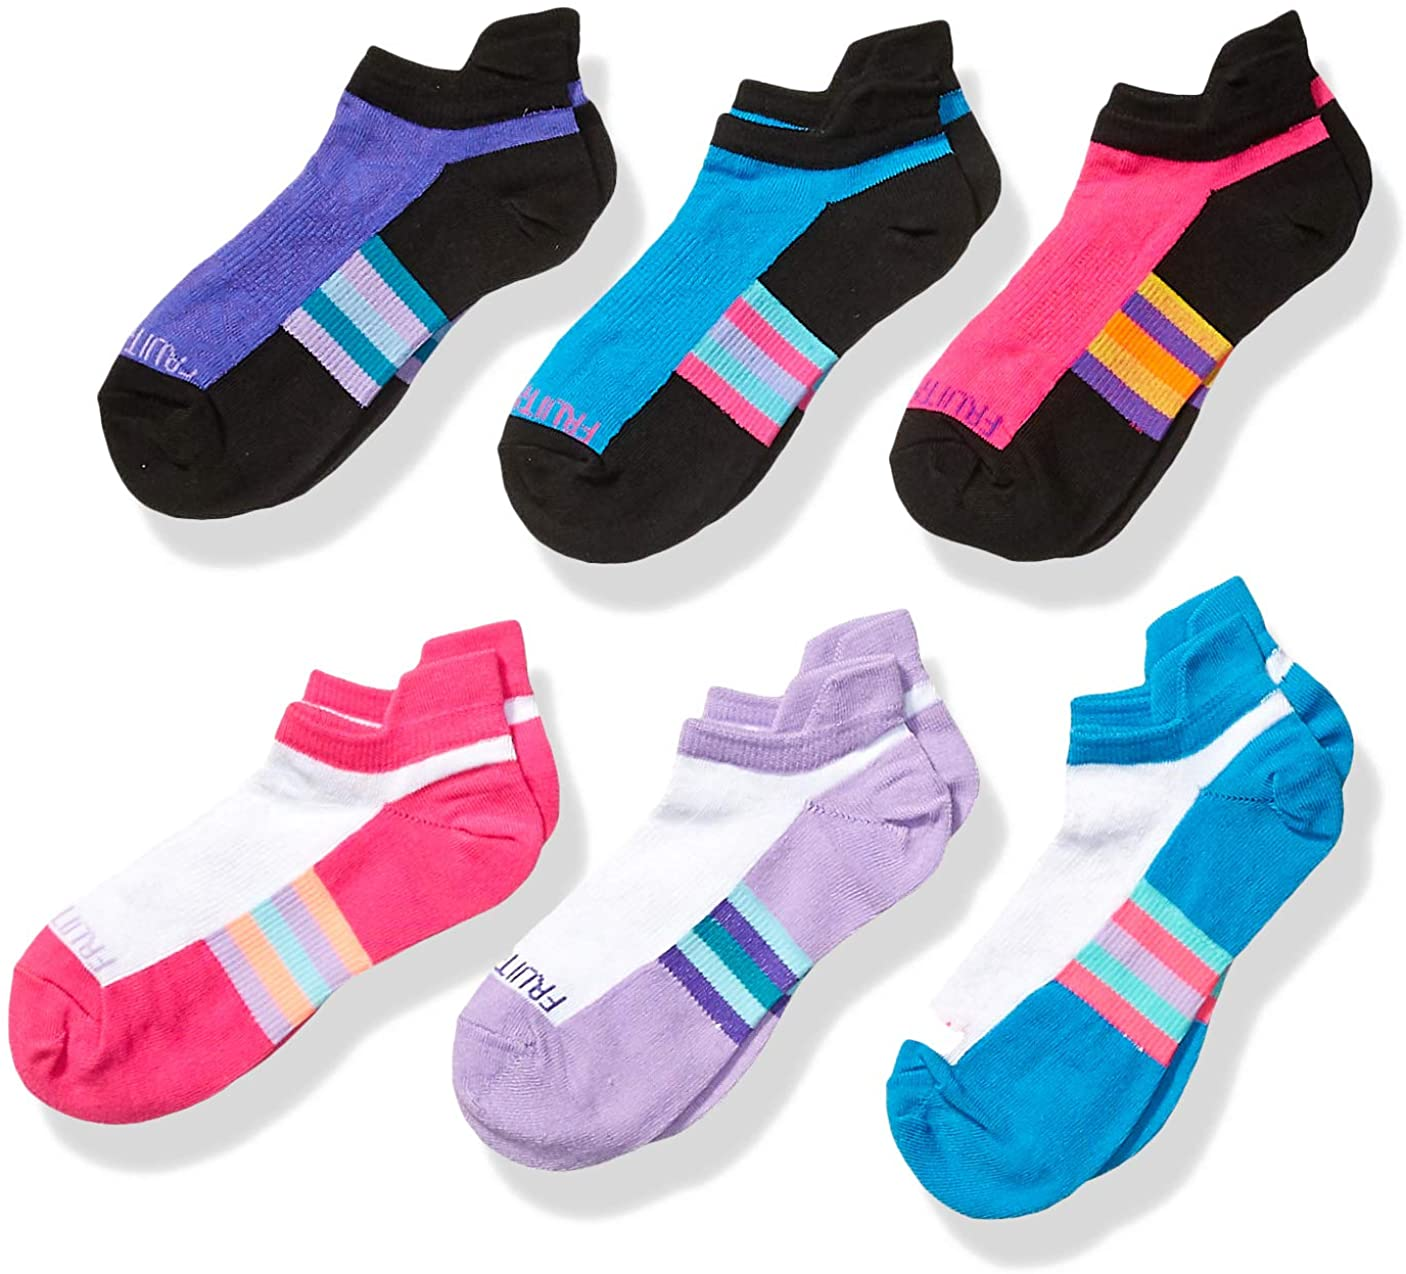 Fruit of the Loom Girls Active Lightweight Ankle Socks 6 Pair